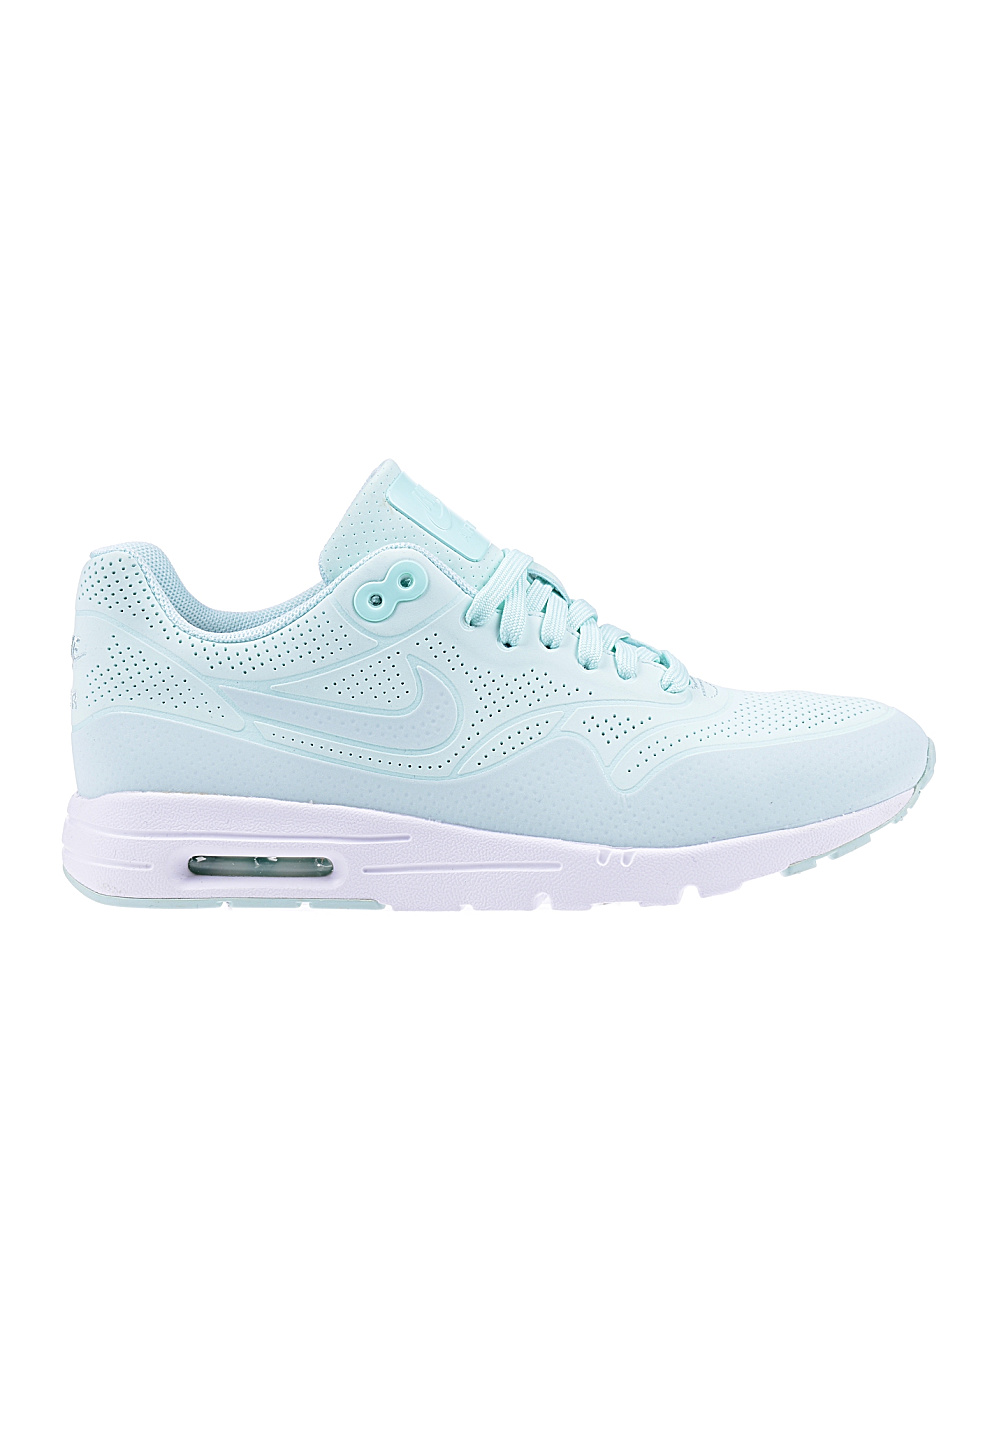 NIKE SPORTSWEAR Air Max 1 Ultra Moire - Sneakers for Women - Green - Planet Sports